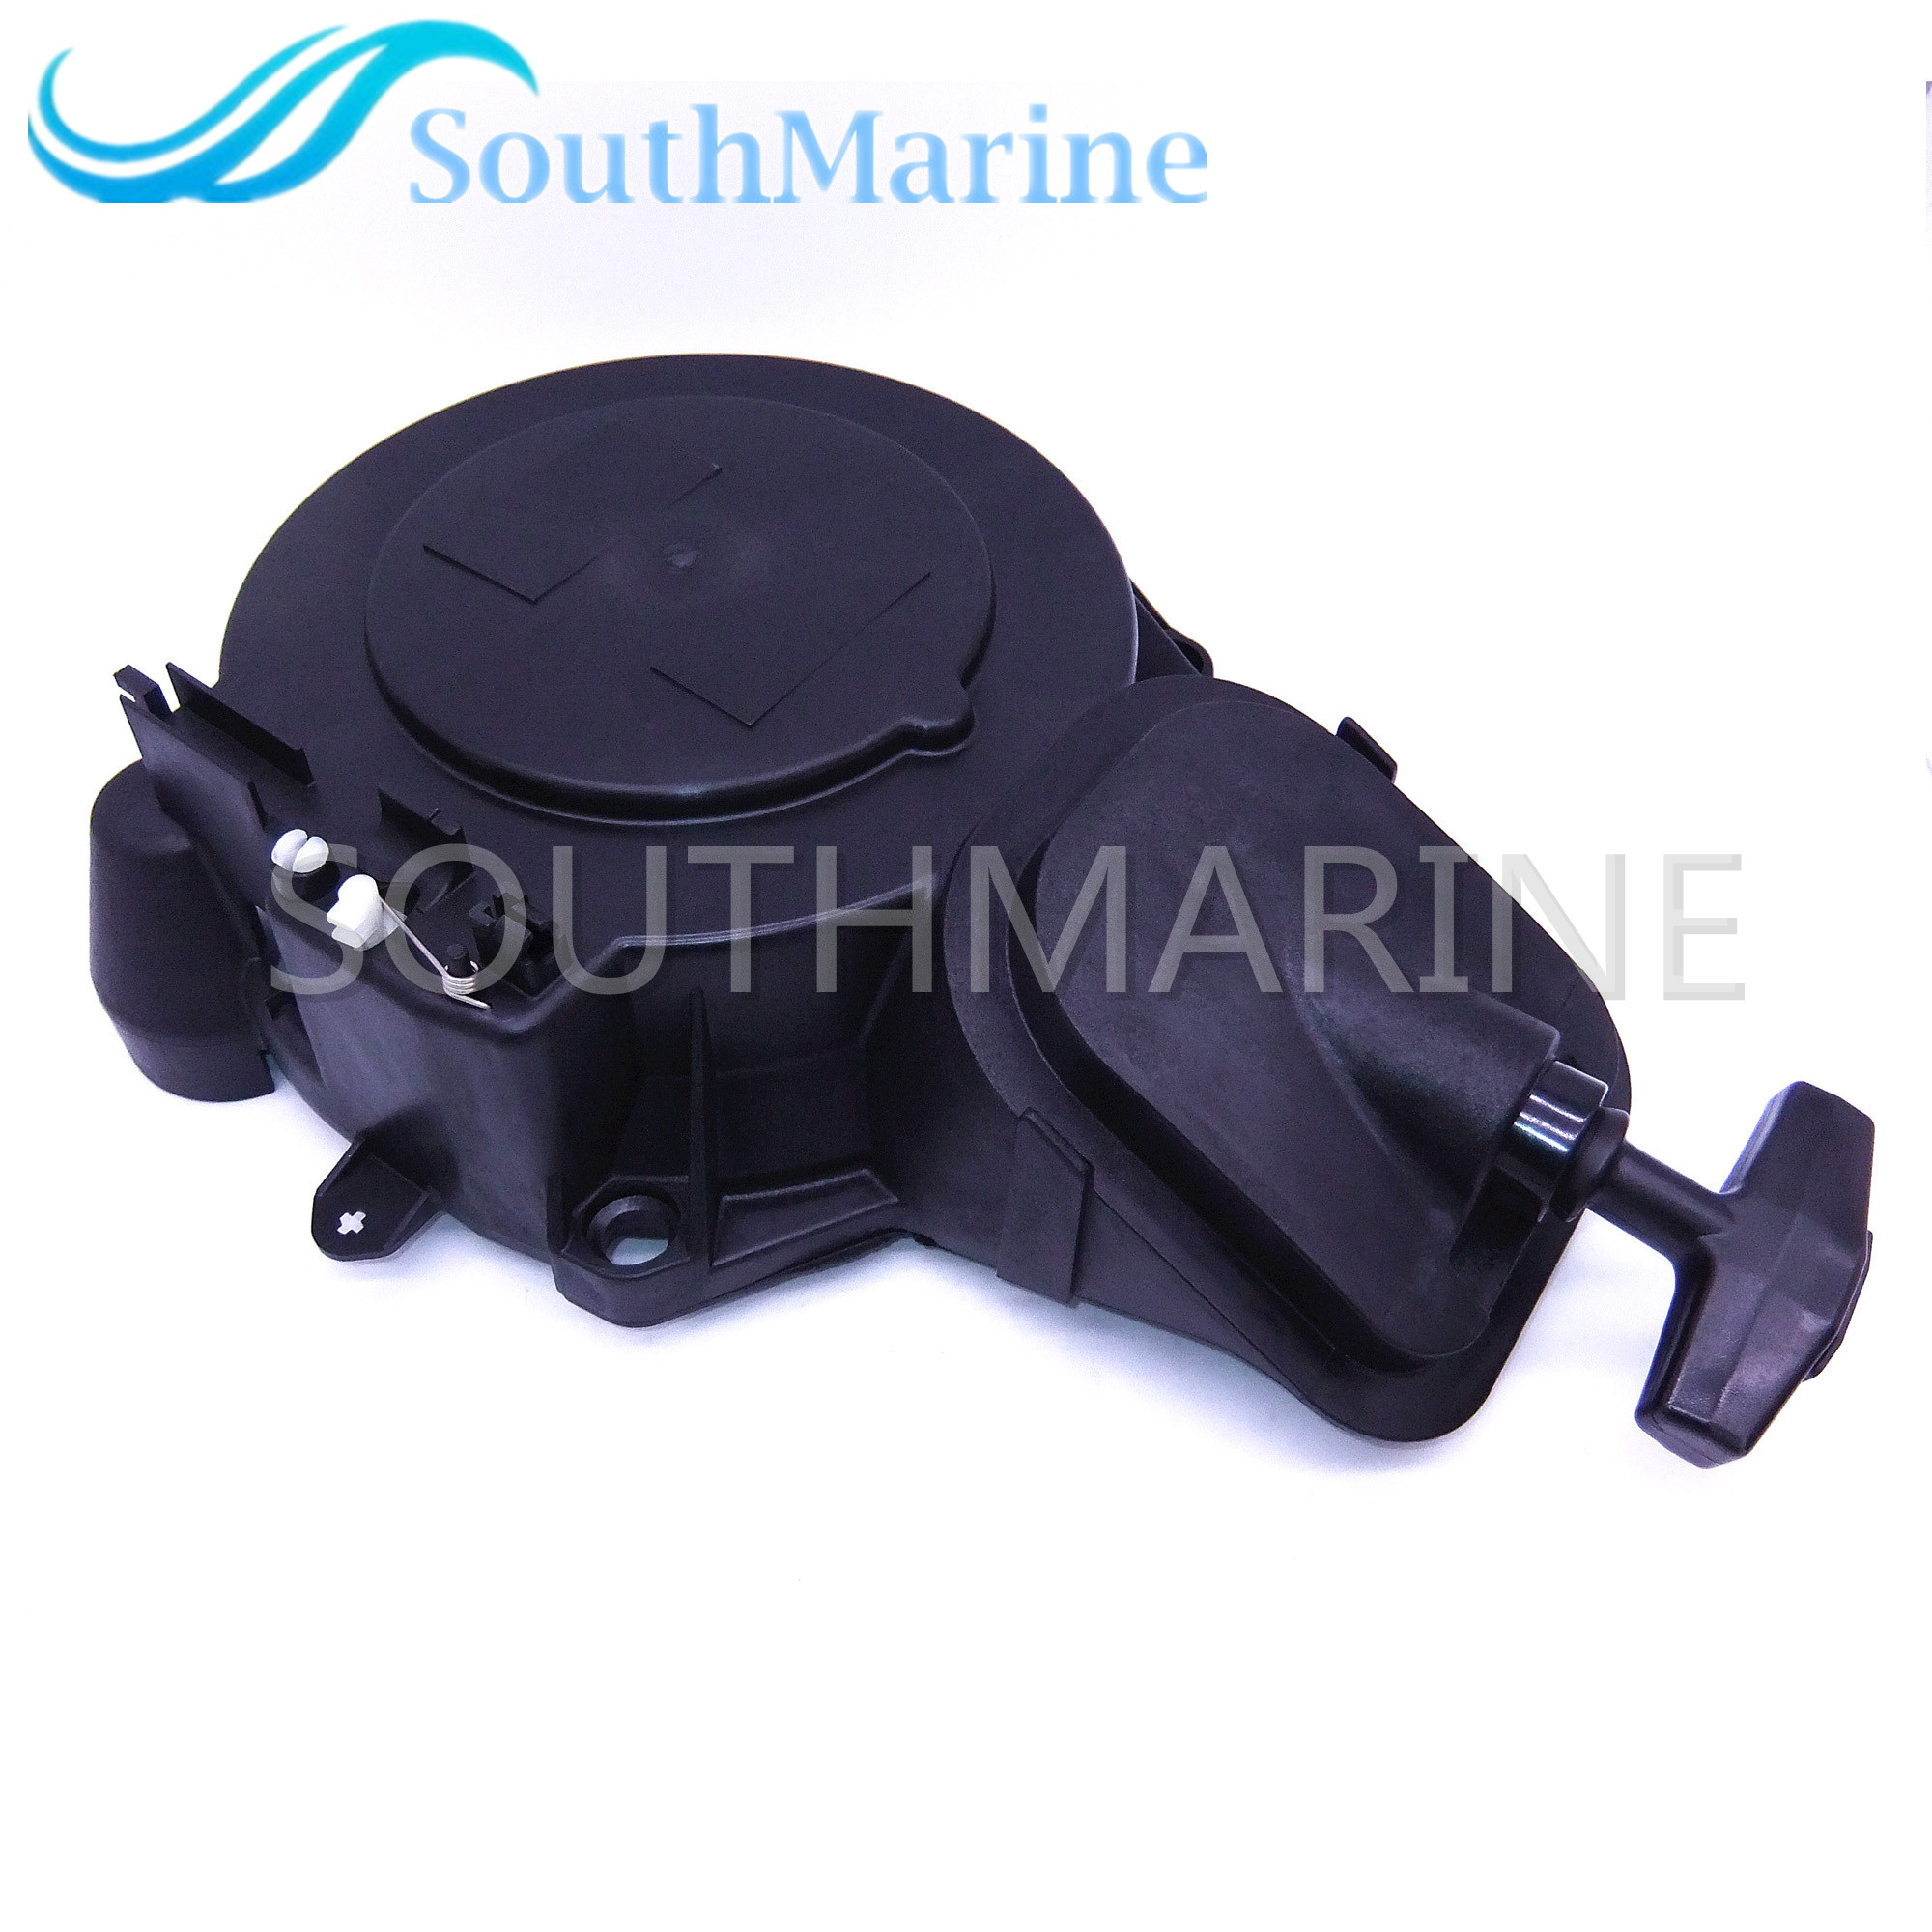 Starter Assy T40-05110000 for Parsun HDX T30 T40 BM 2-stroke Outboard Motors,Free Shipping